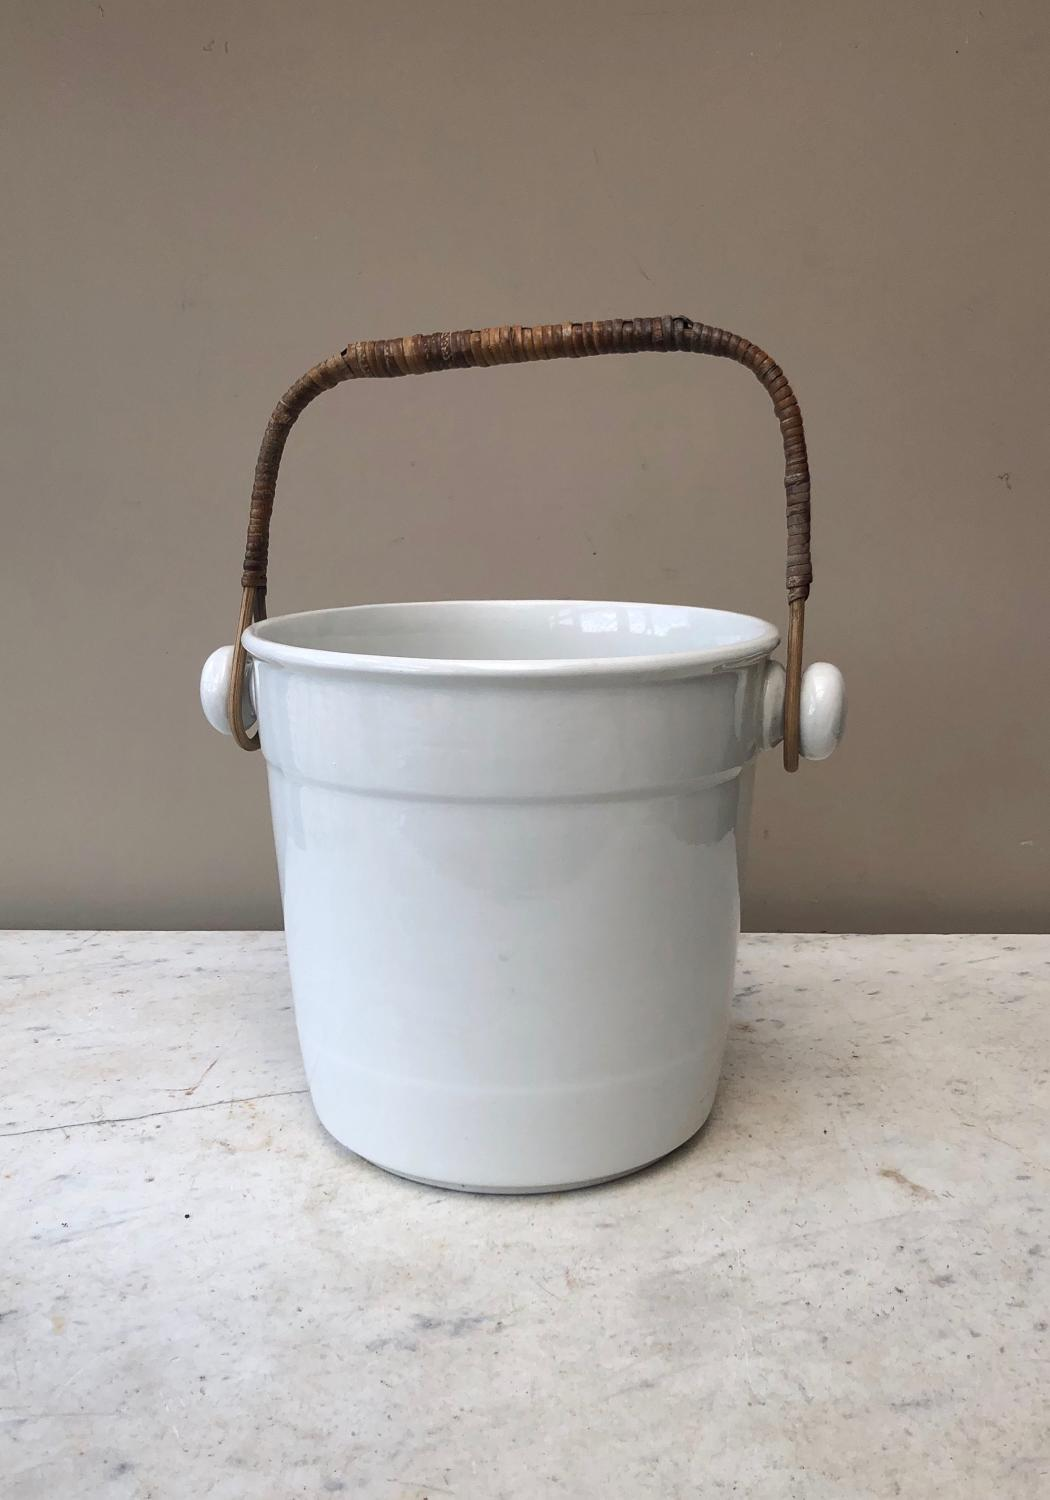 Edwardian White Ironstone Bucket - Wine Cooler - Mint Condition